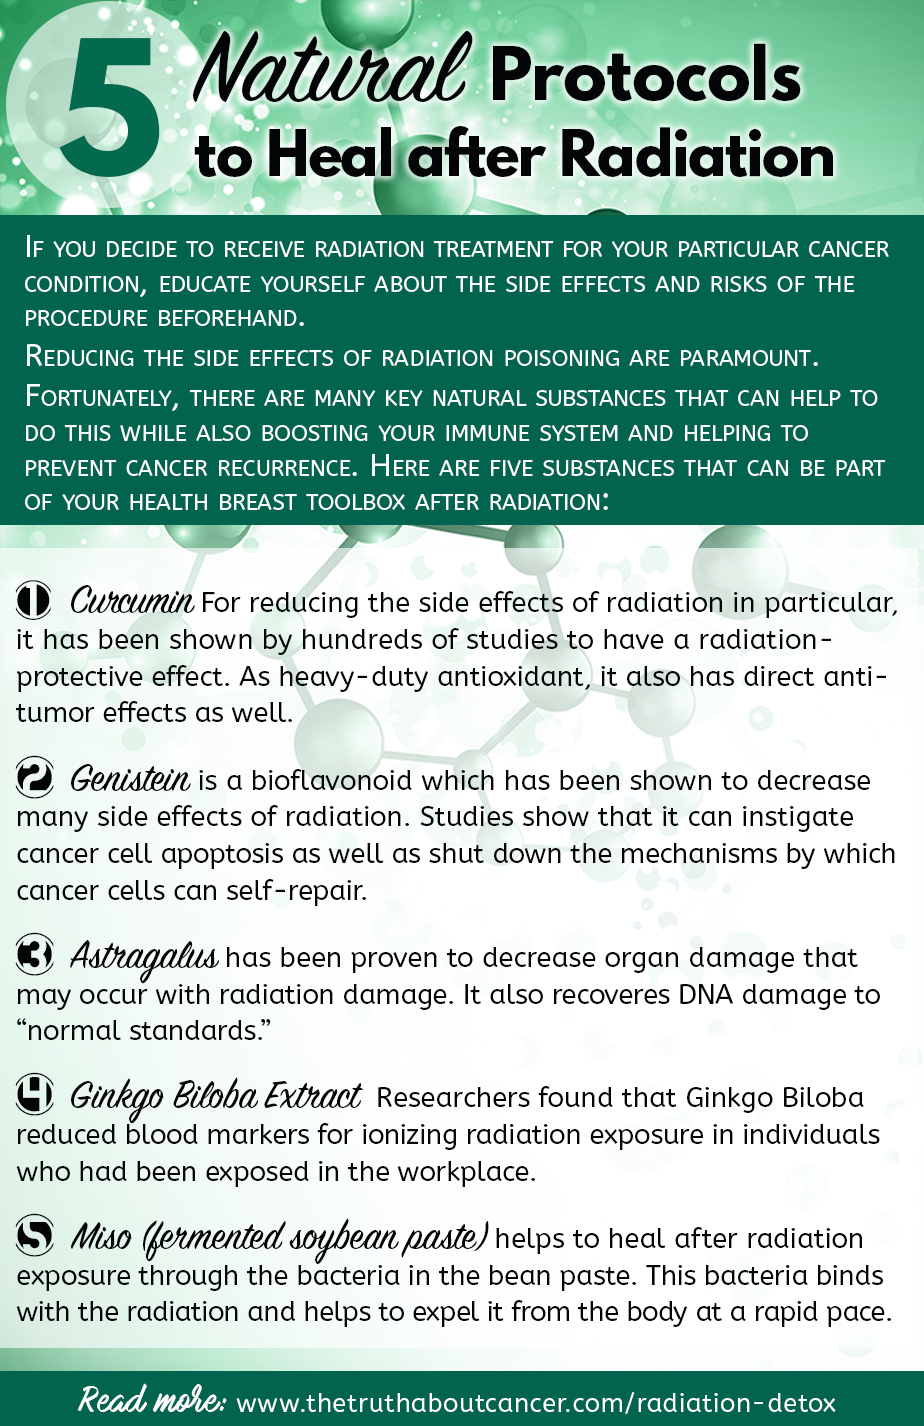 5-natural-treatment-protocols-for-radiation-detox